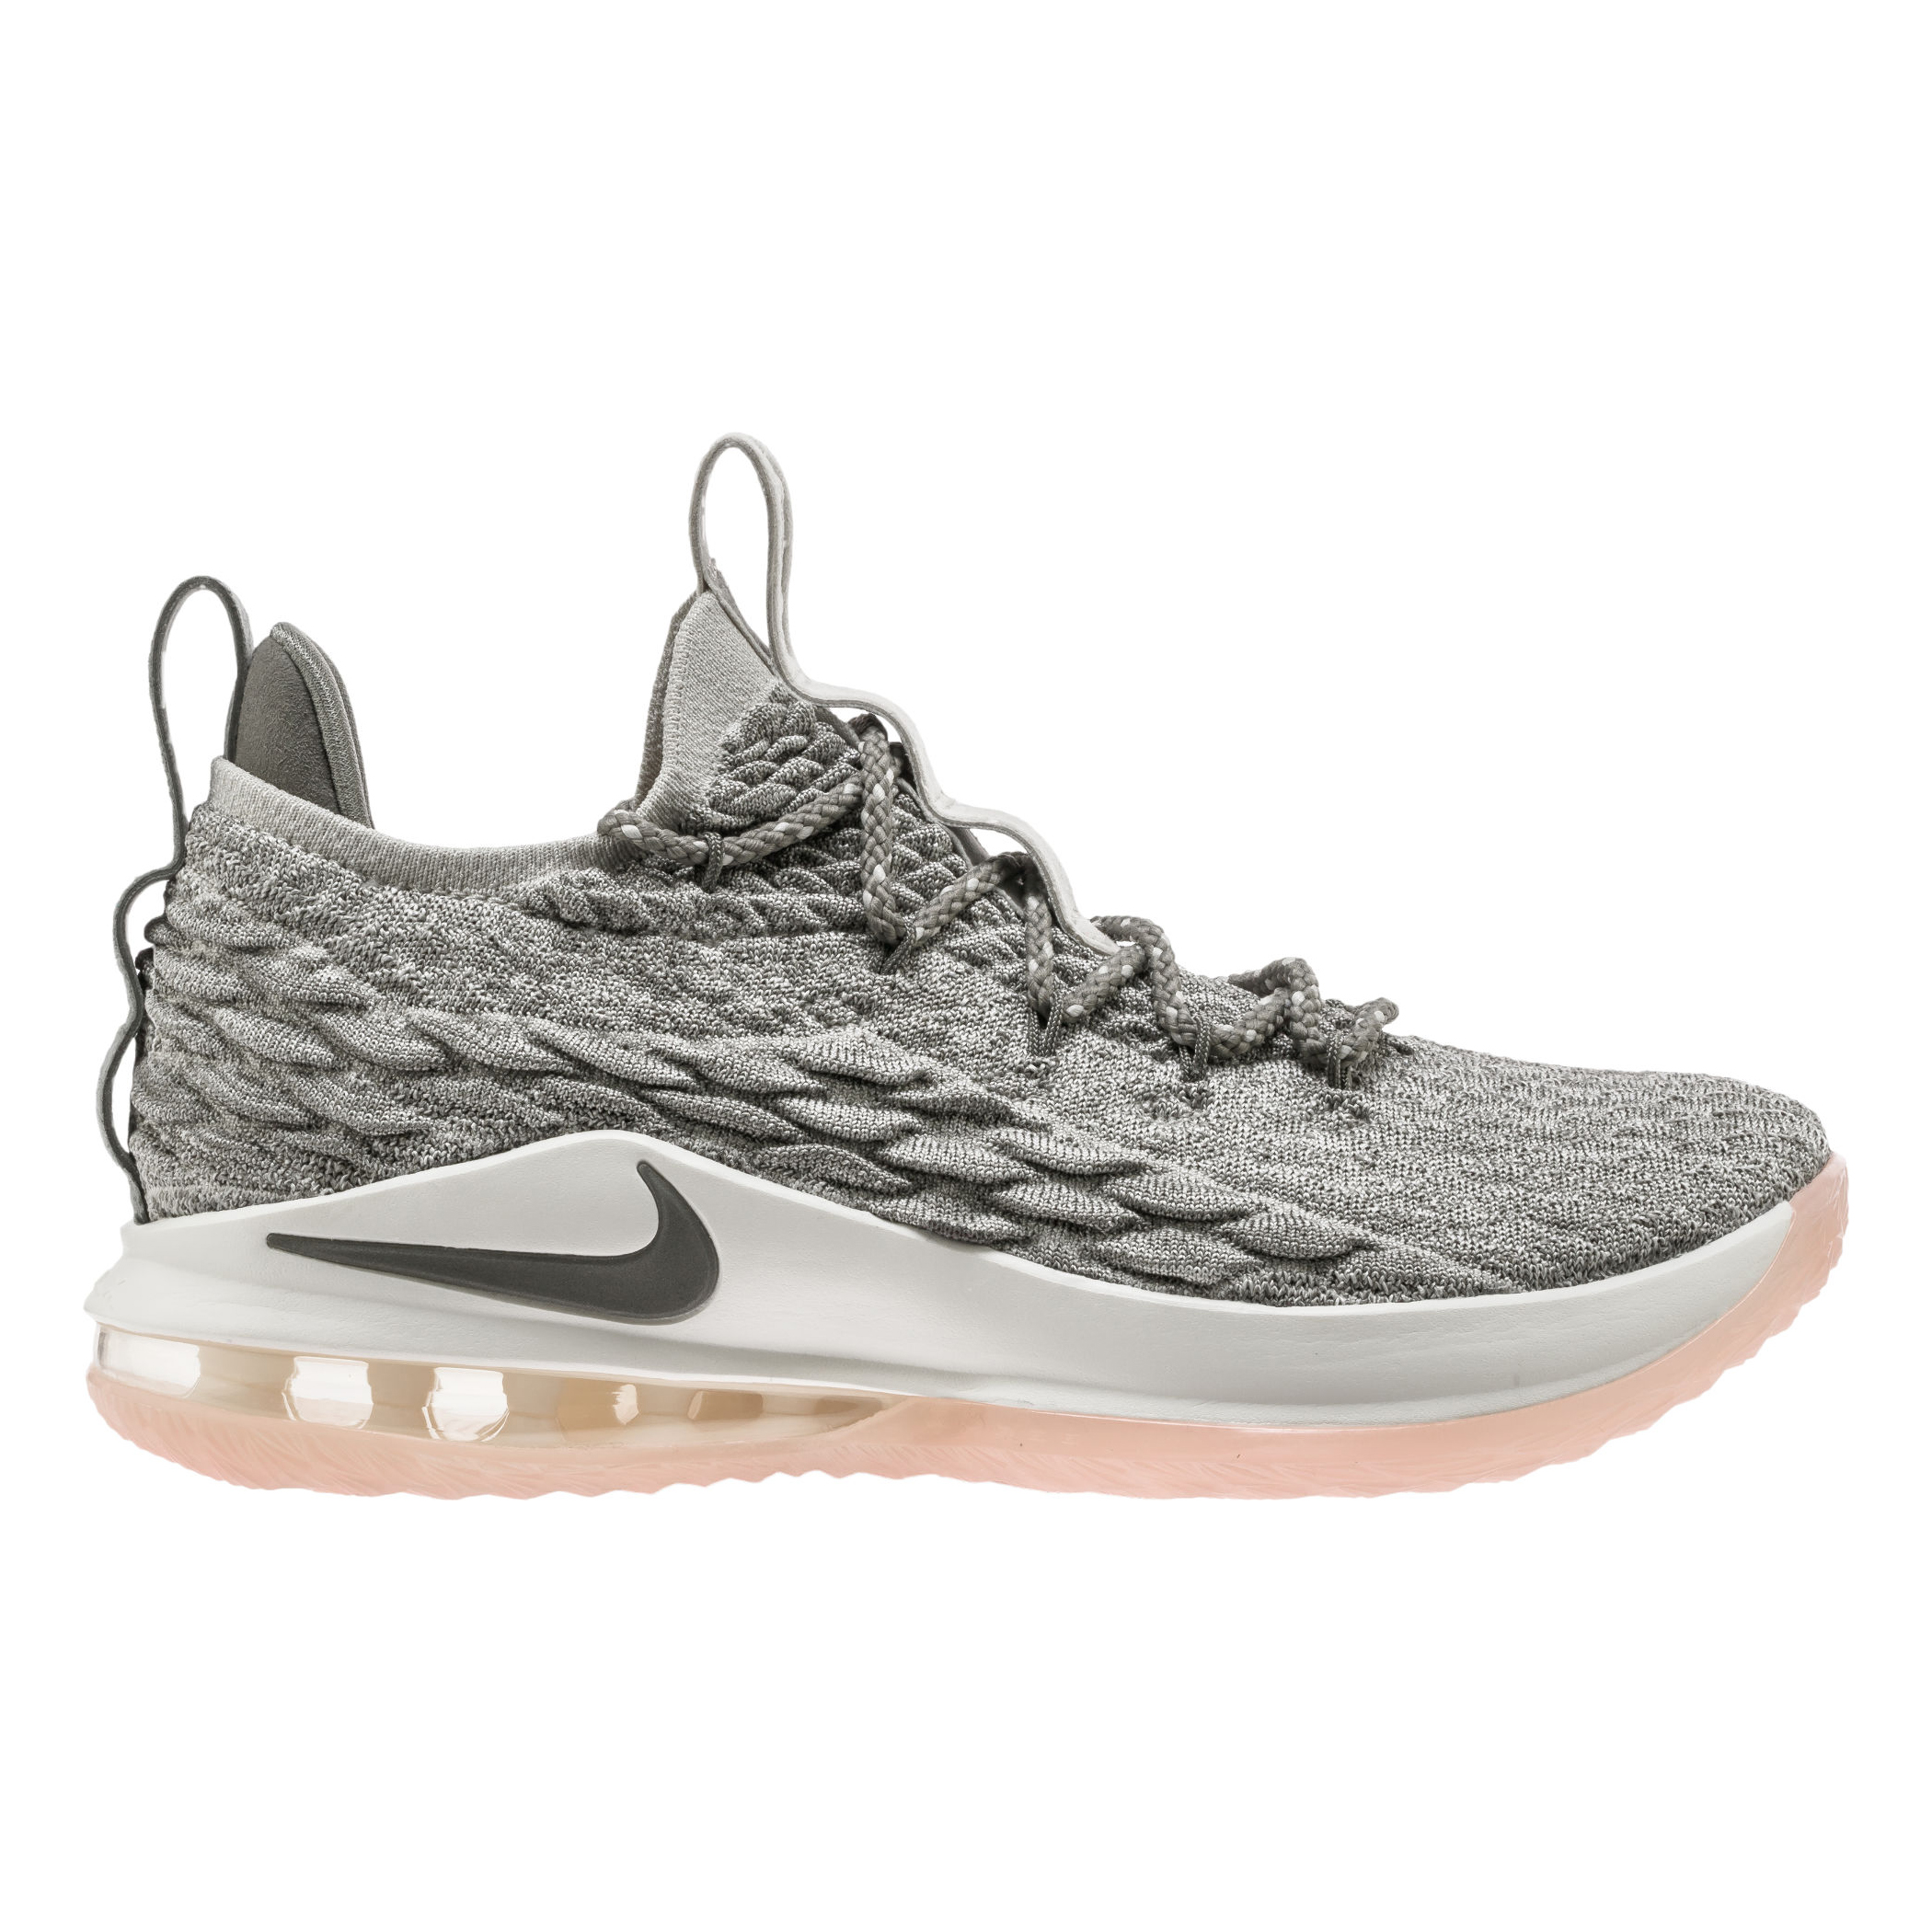 promo code 6af67 36be3 First Official Look at the Nike LeBron 15 Low - WearTesters